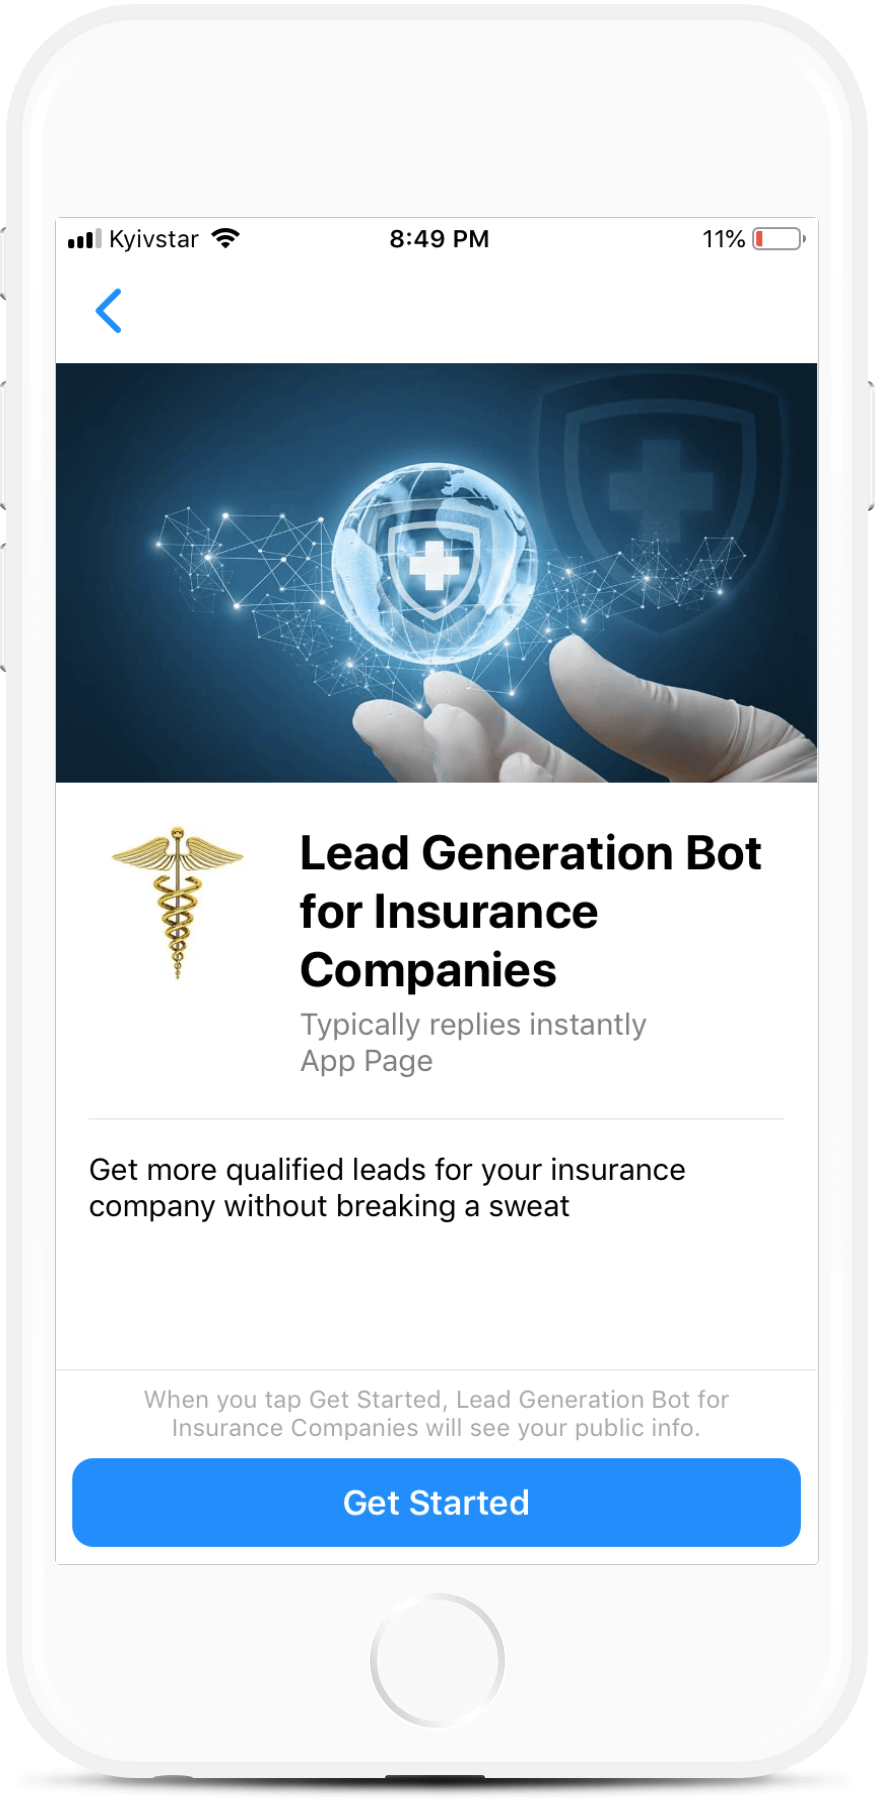 Lead Generation Bot for Insurance Companies